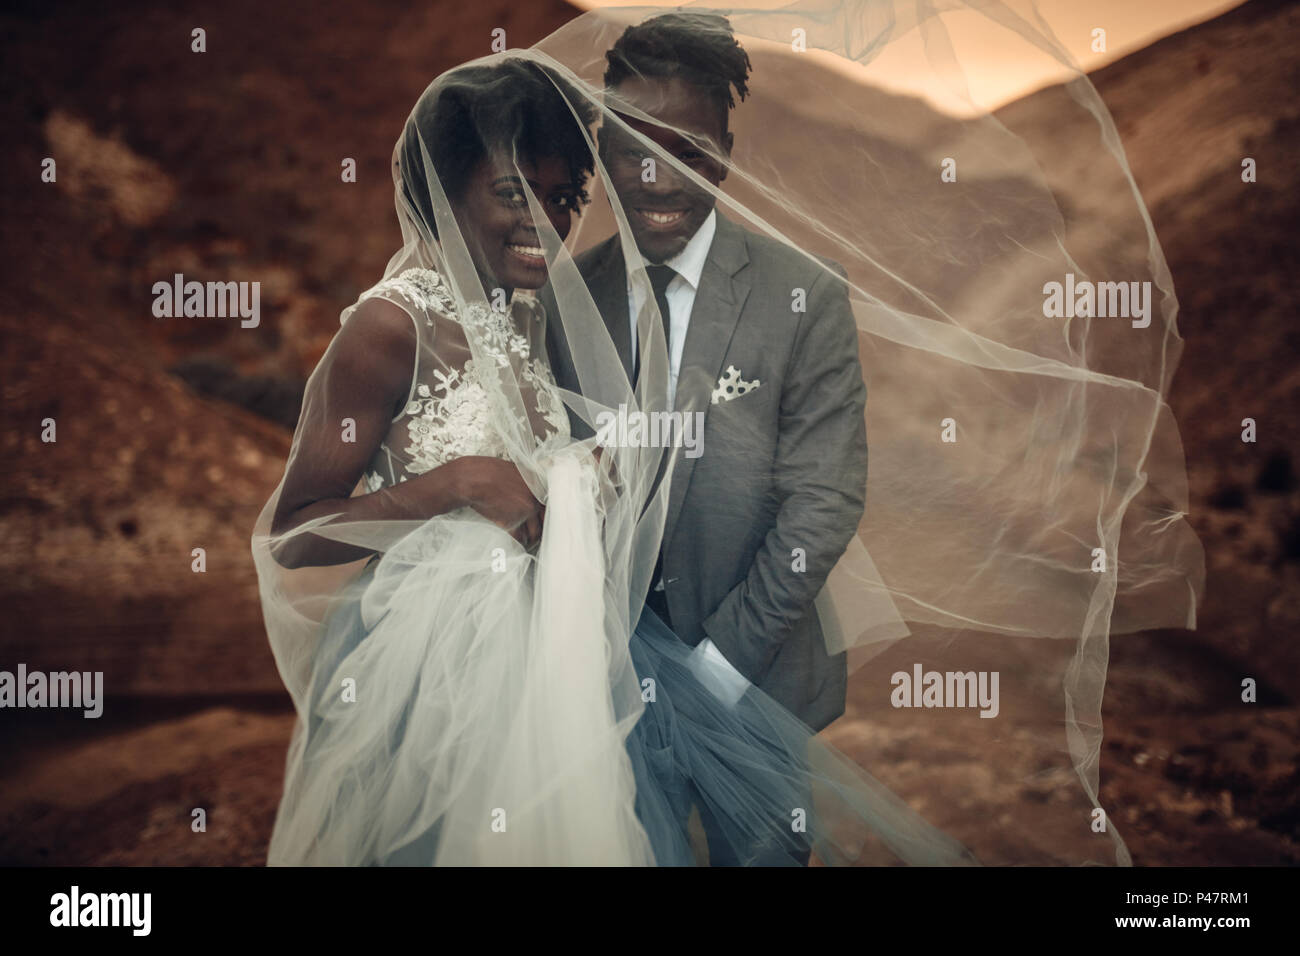 Black happy newlyweds stand under bridal veil and smile in canyon against beautiful landscape at sunset. Closeup. - Stock Image